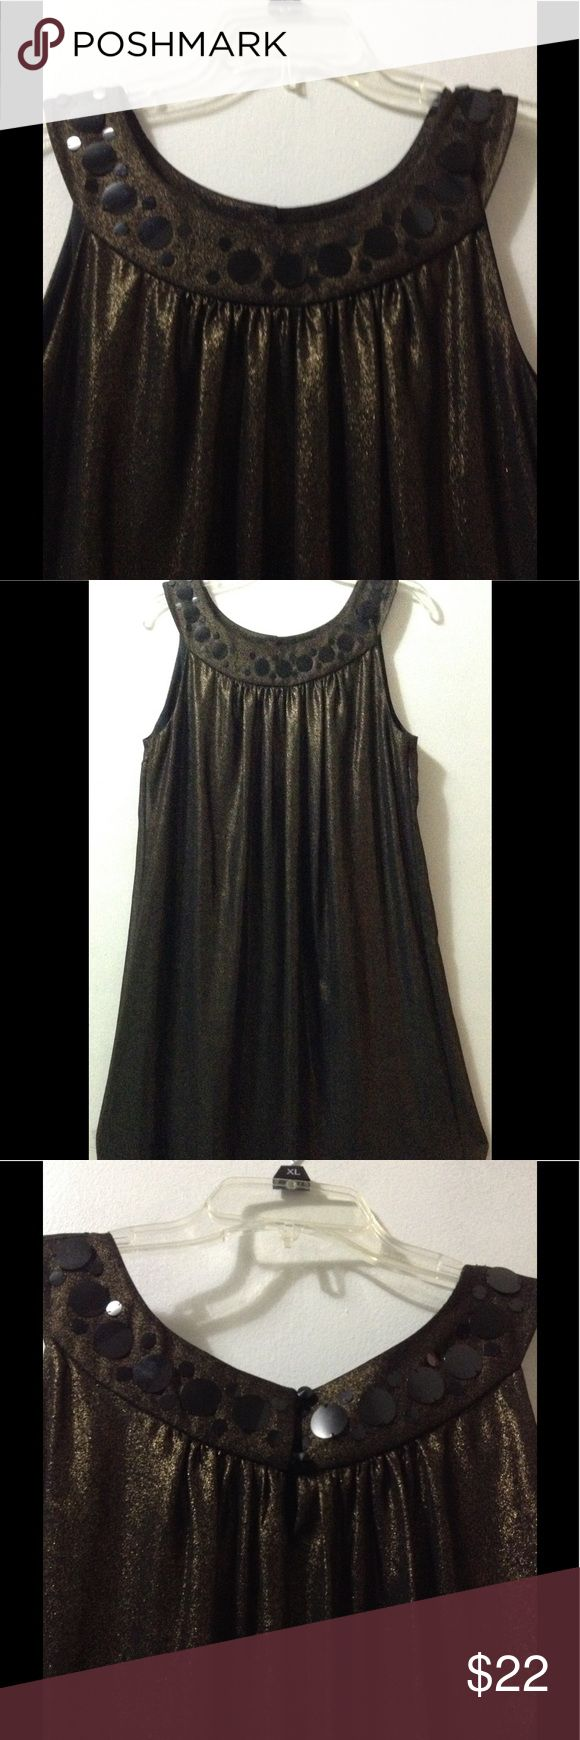 Evening Glam Comfy Dress Evening Glam Comfy Dress. 100% polyester. Very loose and flarely Large black circle sequence design in collar, glittery gold design. Brand new (WOT) Never been used guaranteed. Lane Bryant Dresses Midi